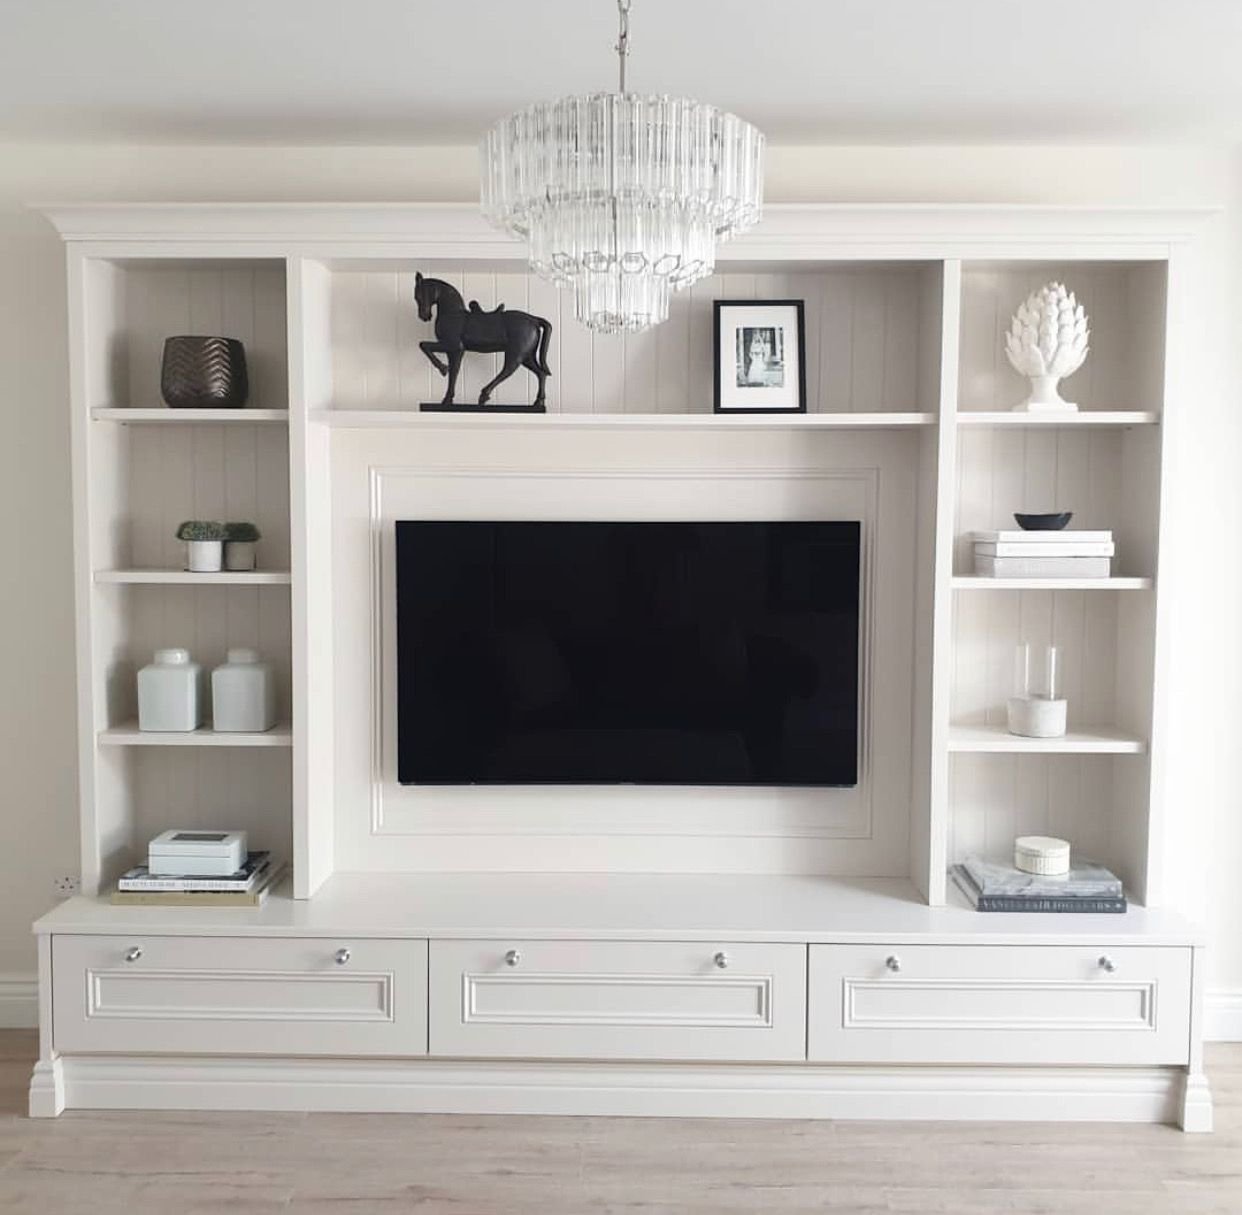 Pin By On Home Ideas Built In Shelves Living Room Living Room Wall Units Tv Room Design